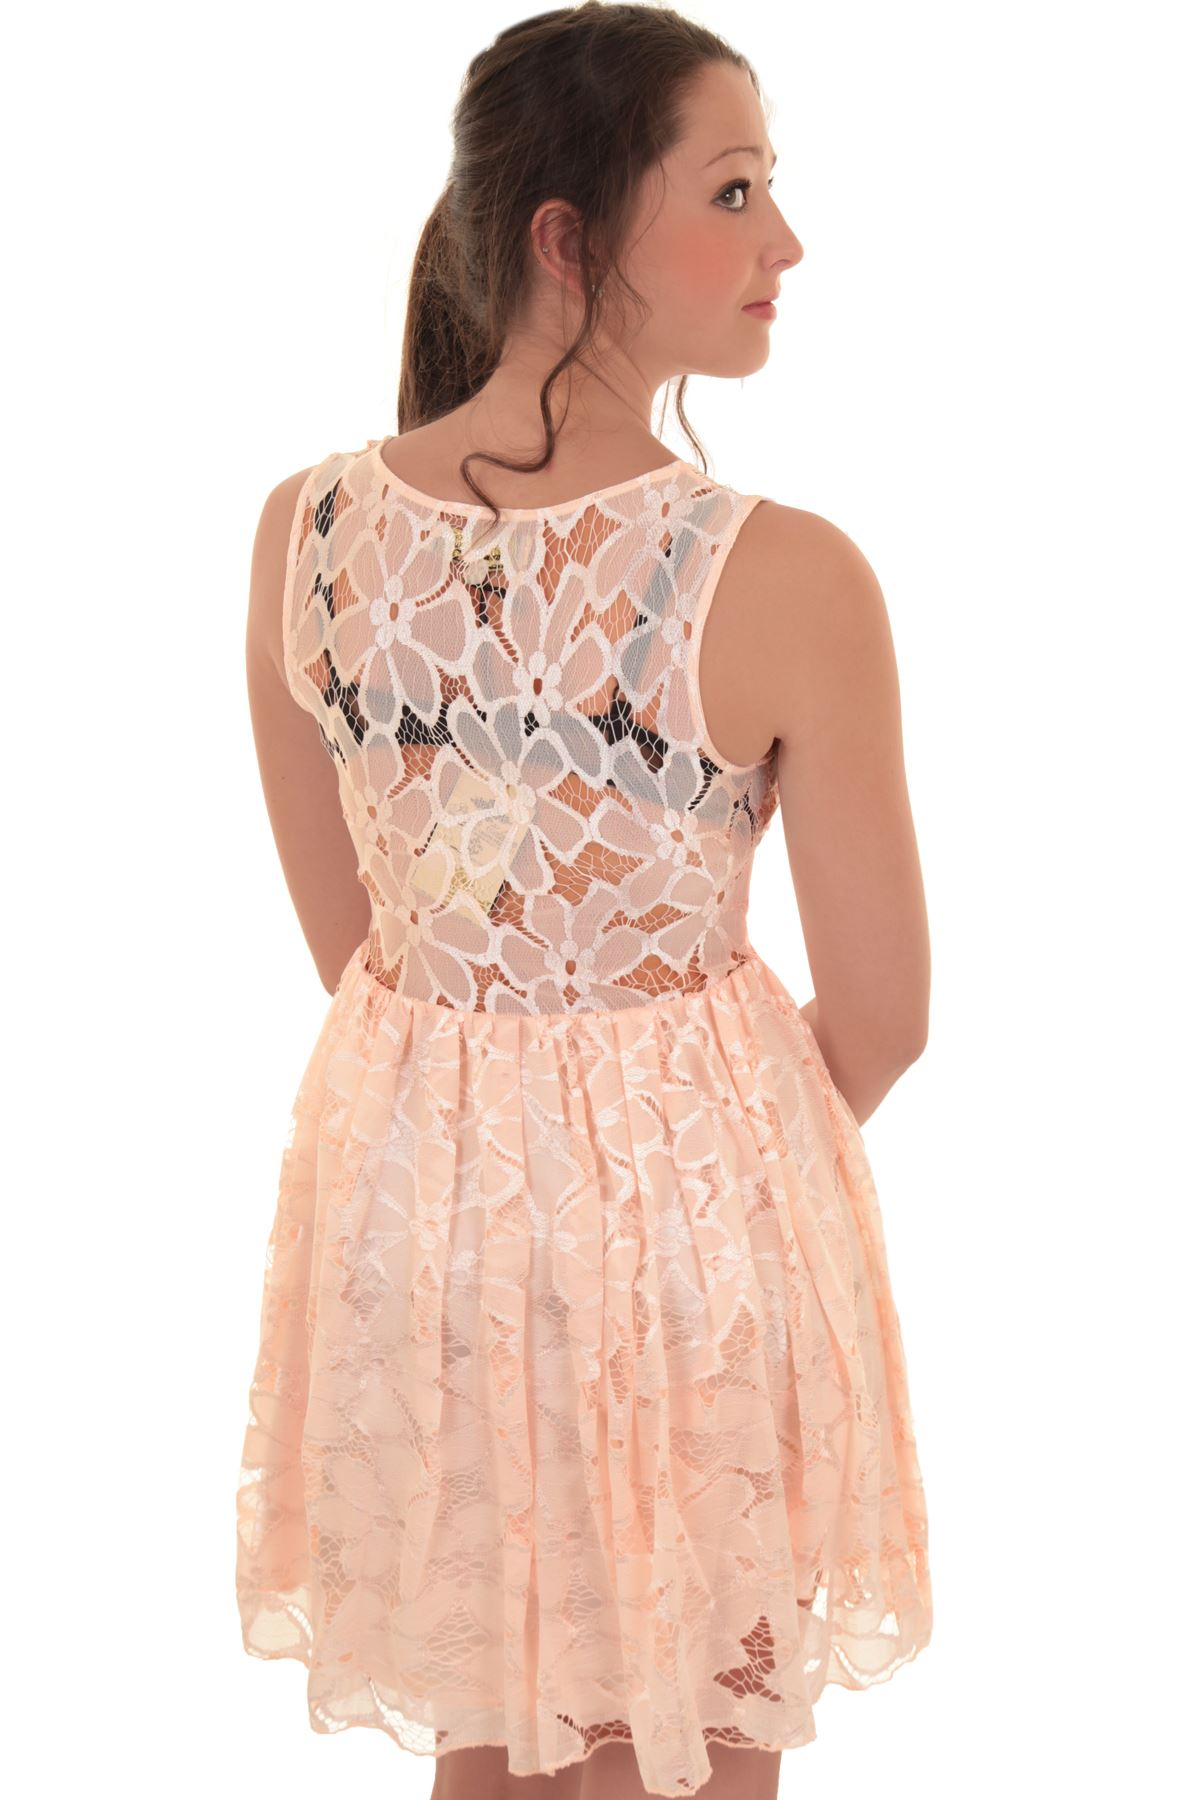 Ladies Celeb Franki Sleeveless Belted Mesh Lace Lined Floral Skater Party Dress